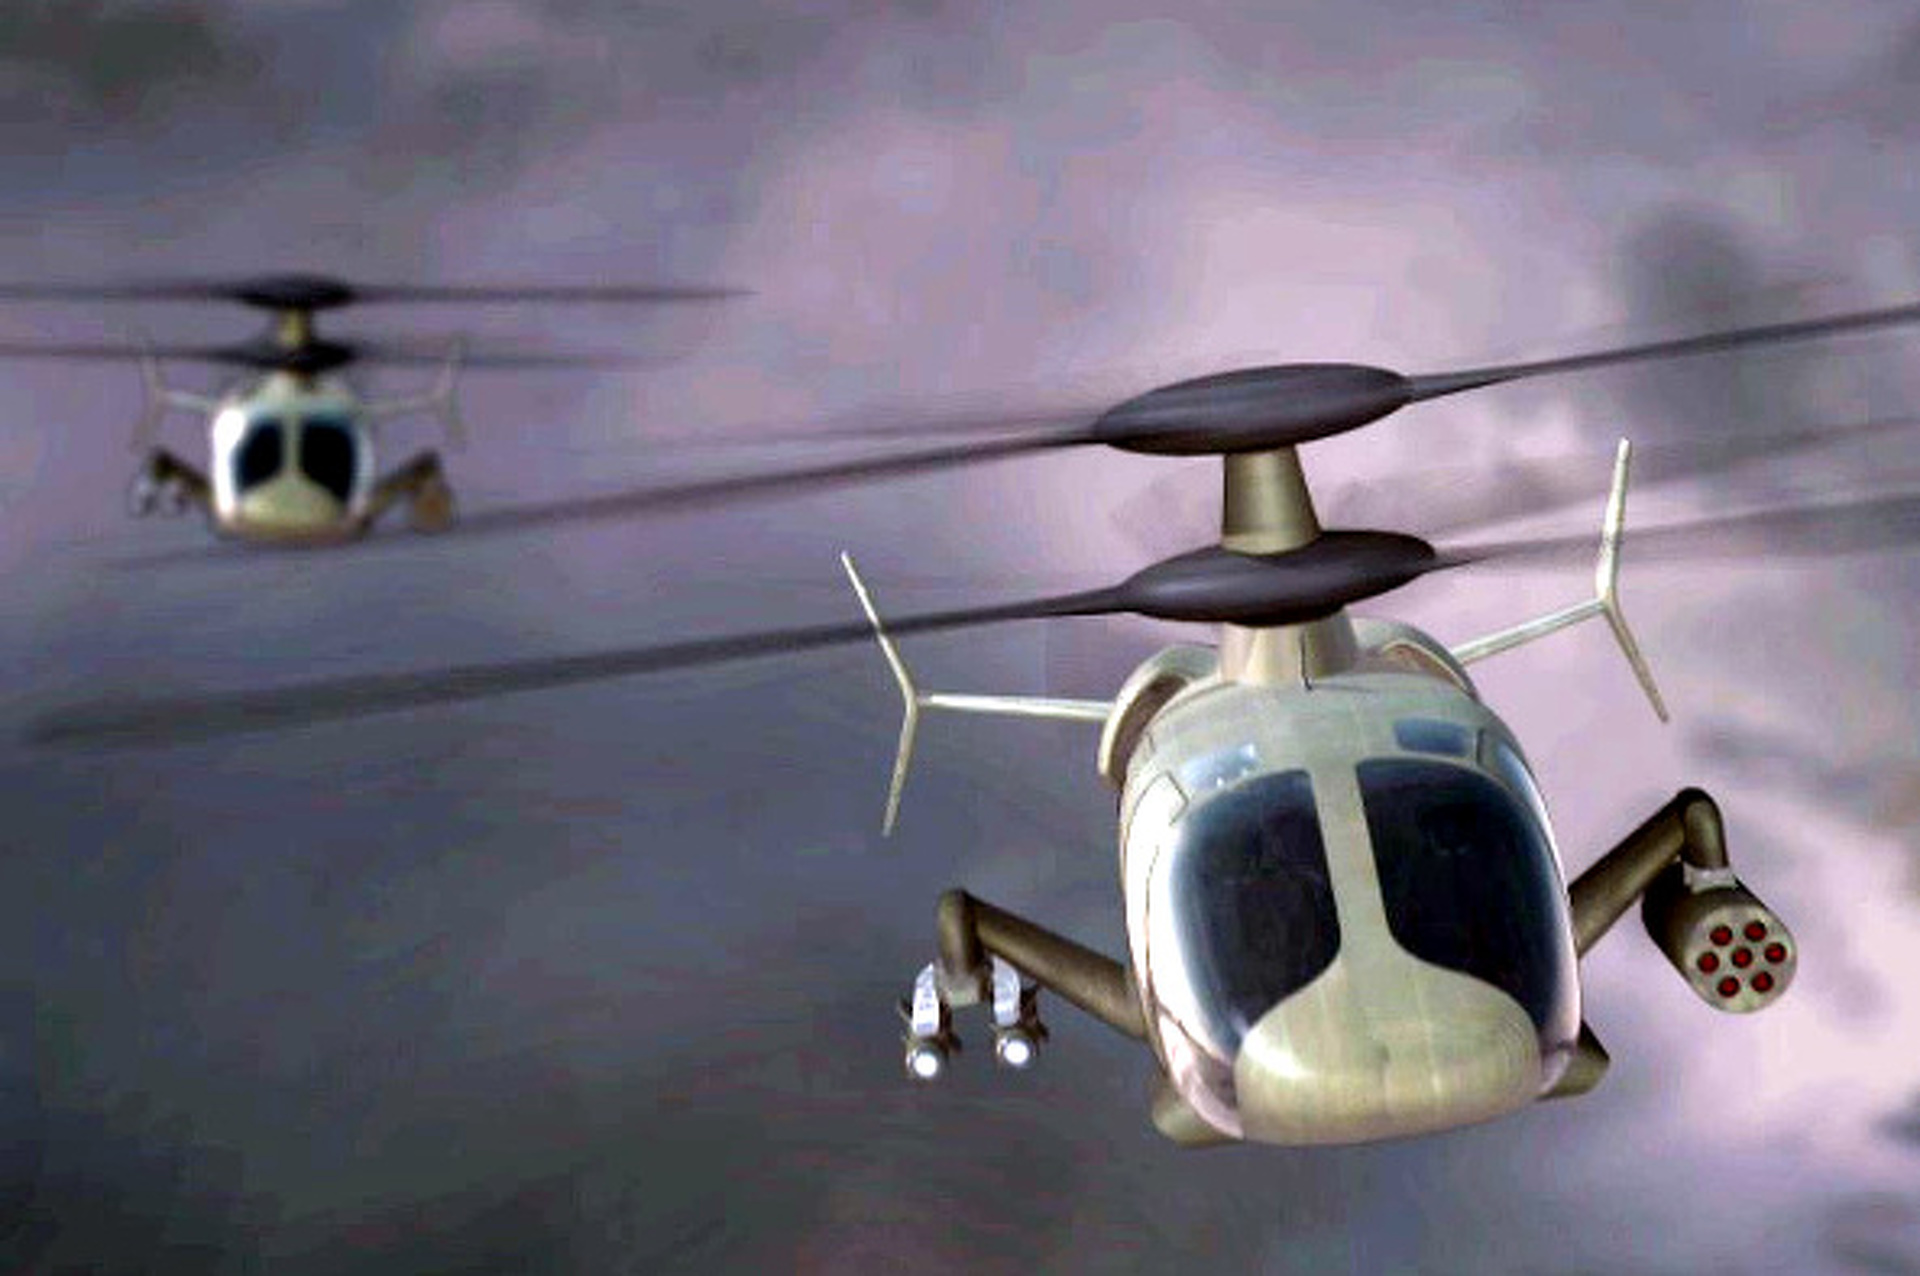 Three-Rotor Copters Set to Change Civilian, Military Helicopter Designs Forever